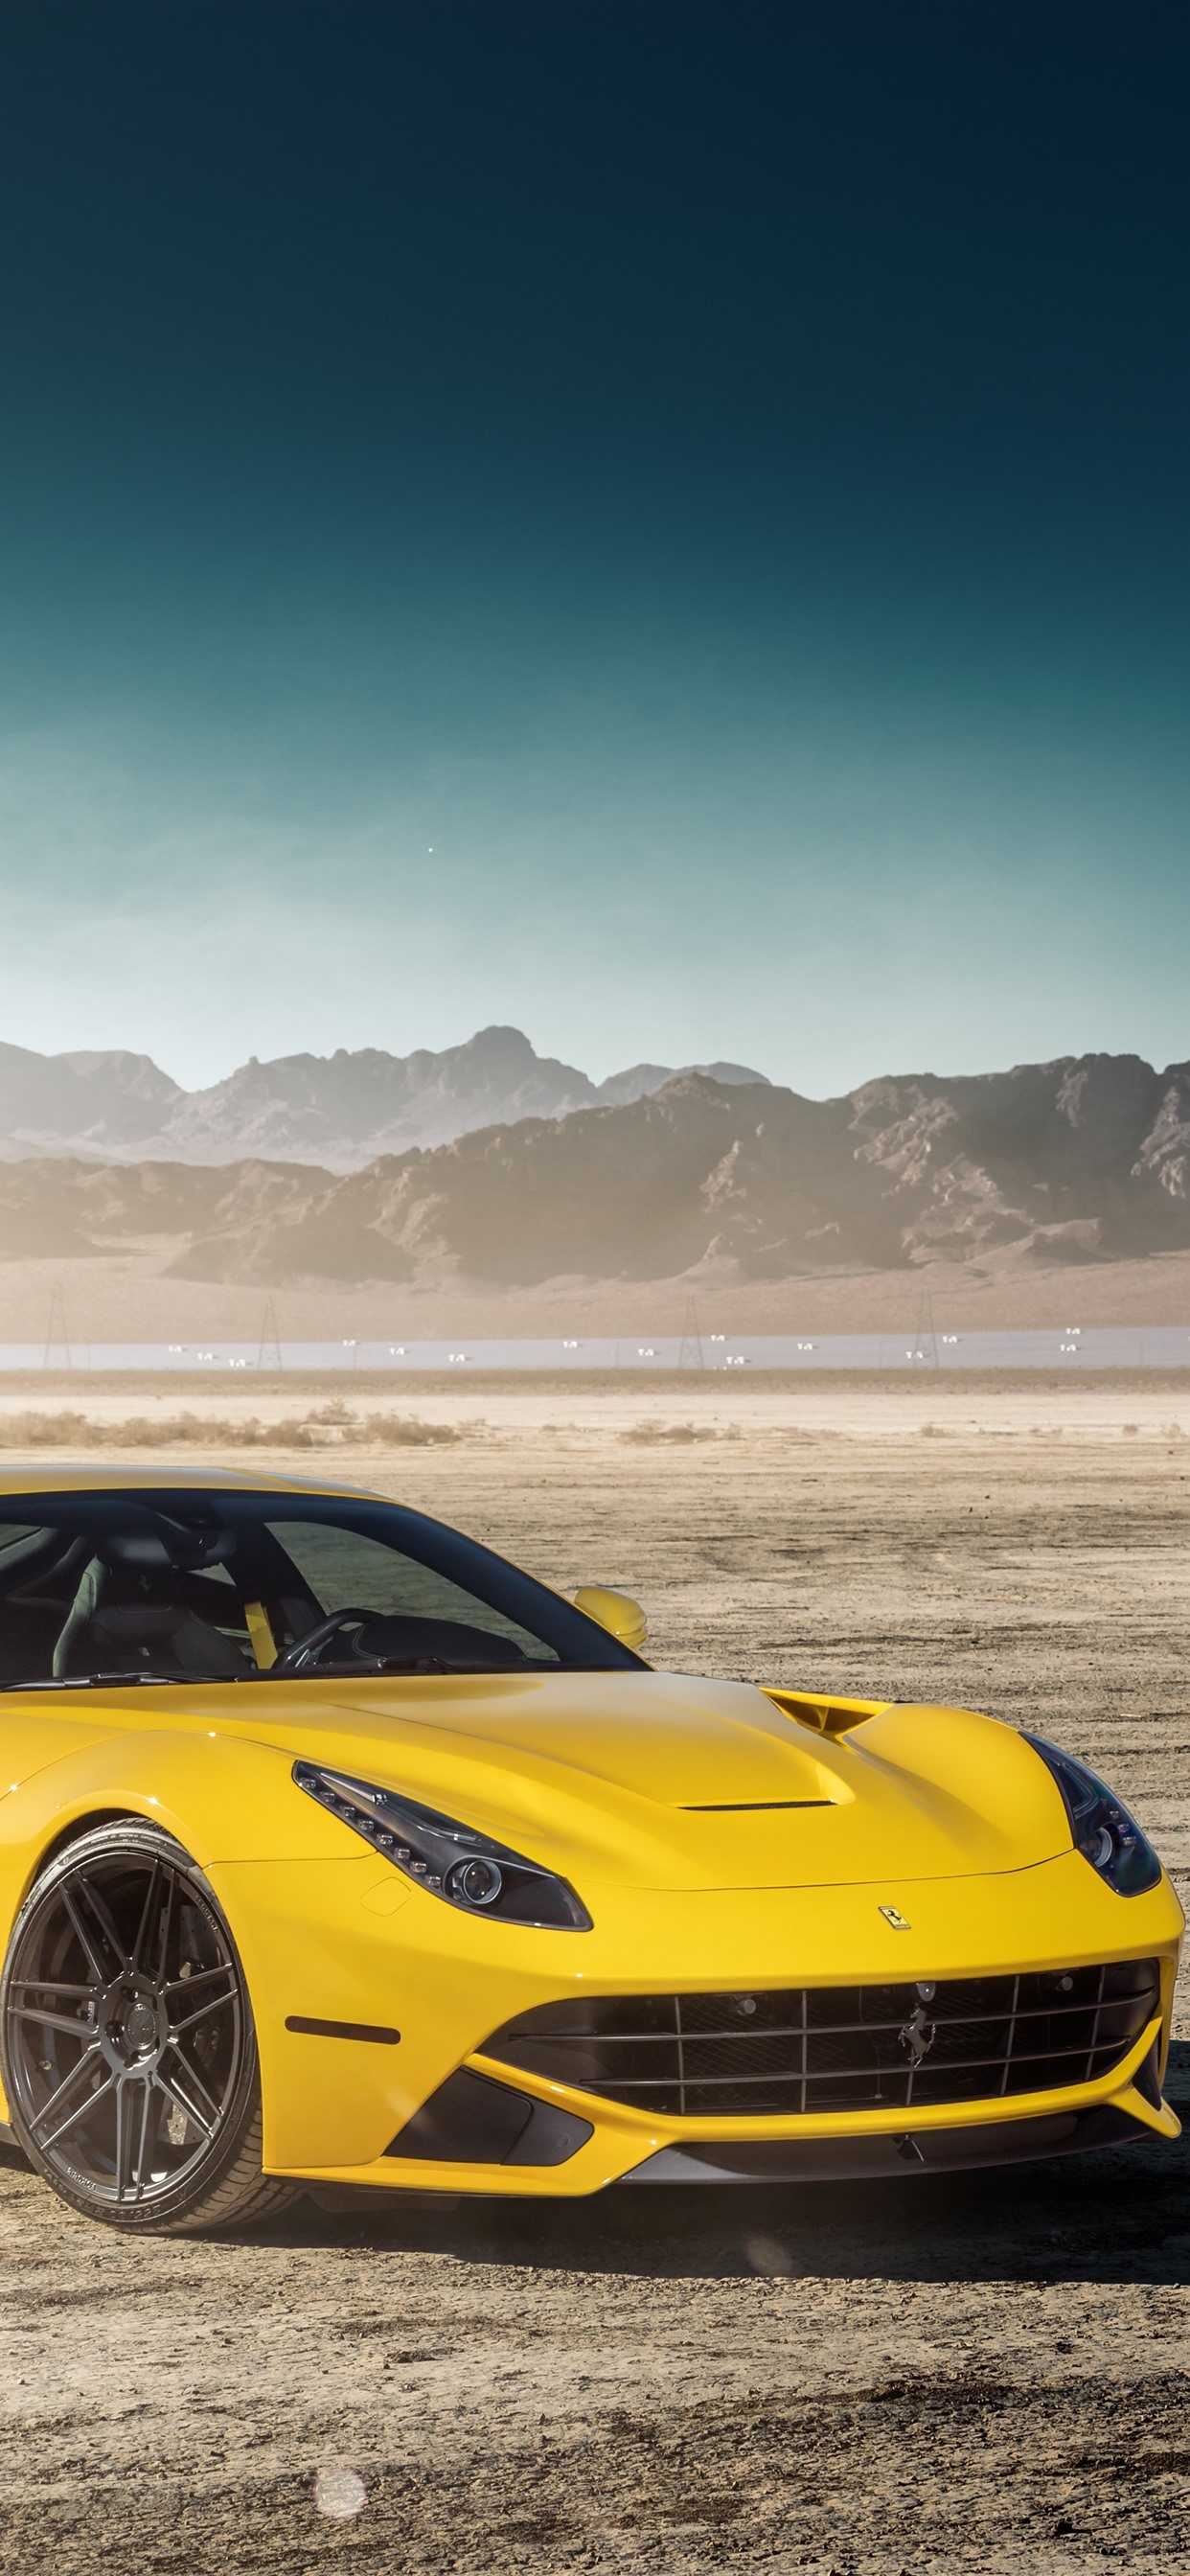 Mercedes Benz Gtr Green Supercar And Ferrari F12 Yellow Supercar 1242x2688 Iphone 11 Pro Xs Max Wallpaper Background Picture Image